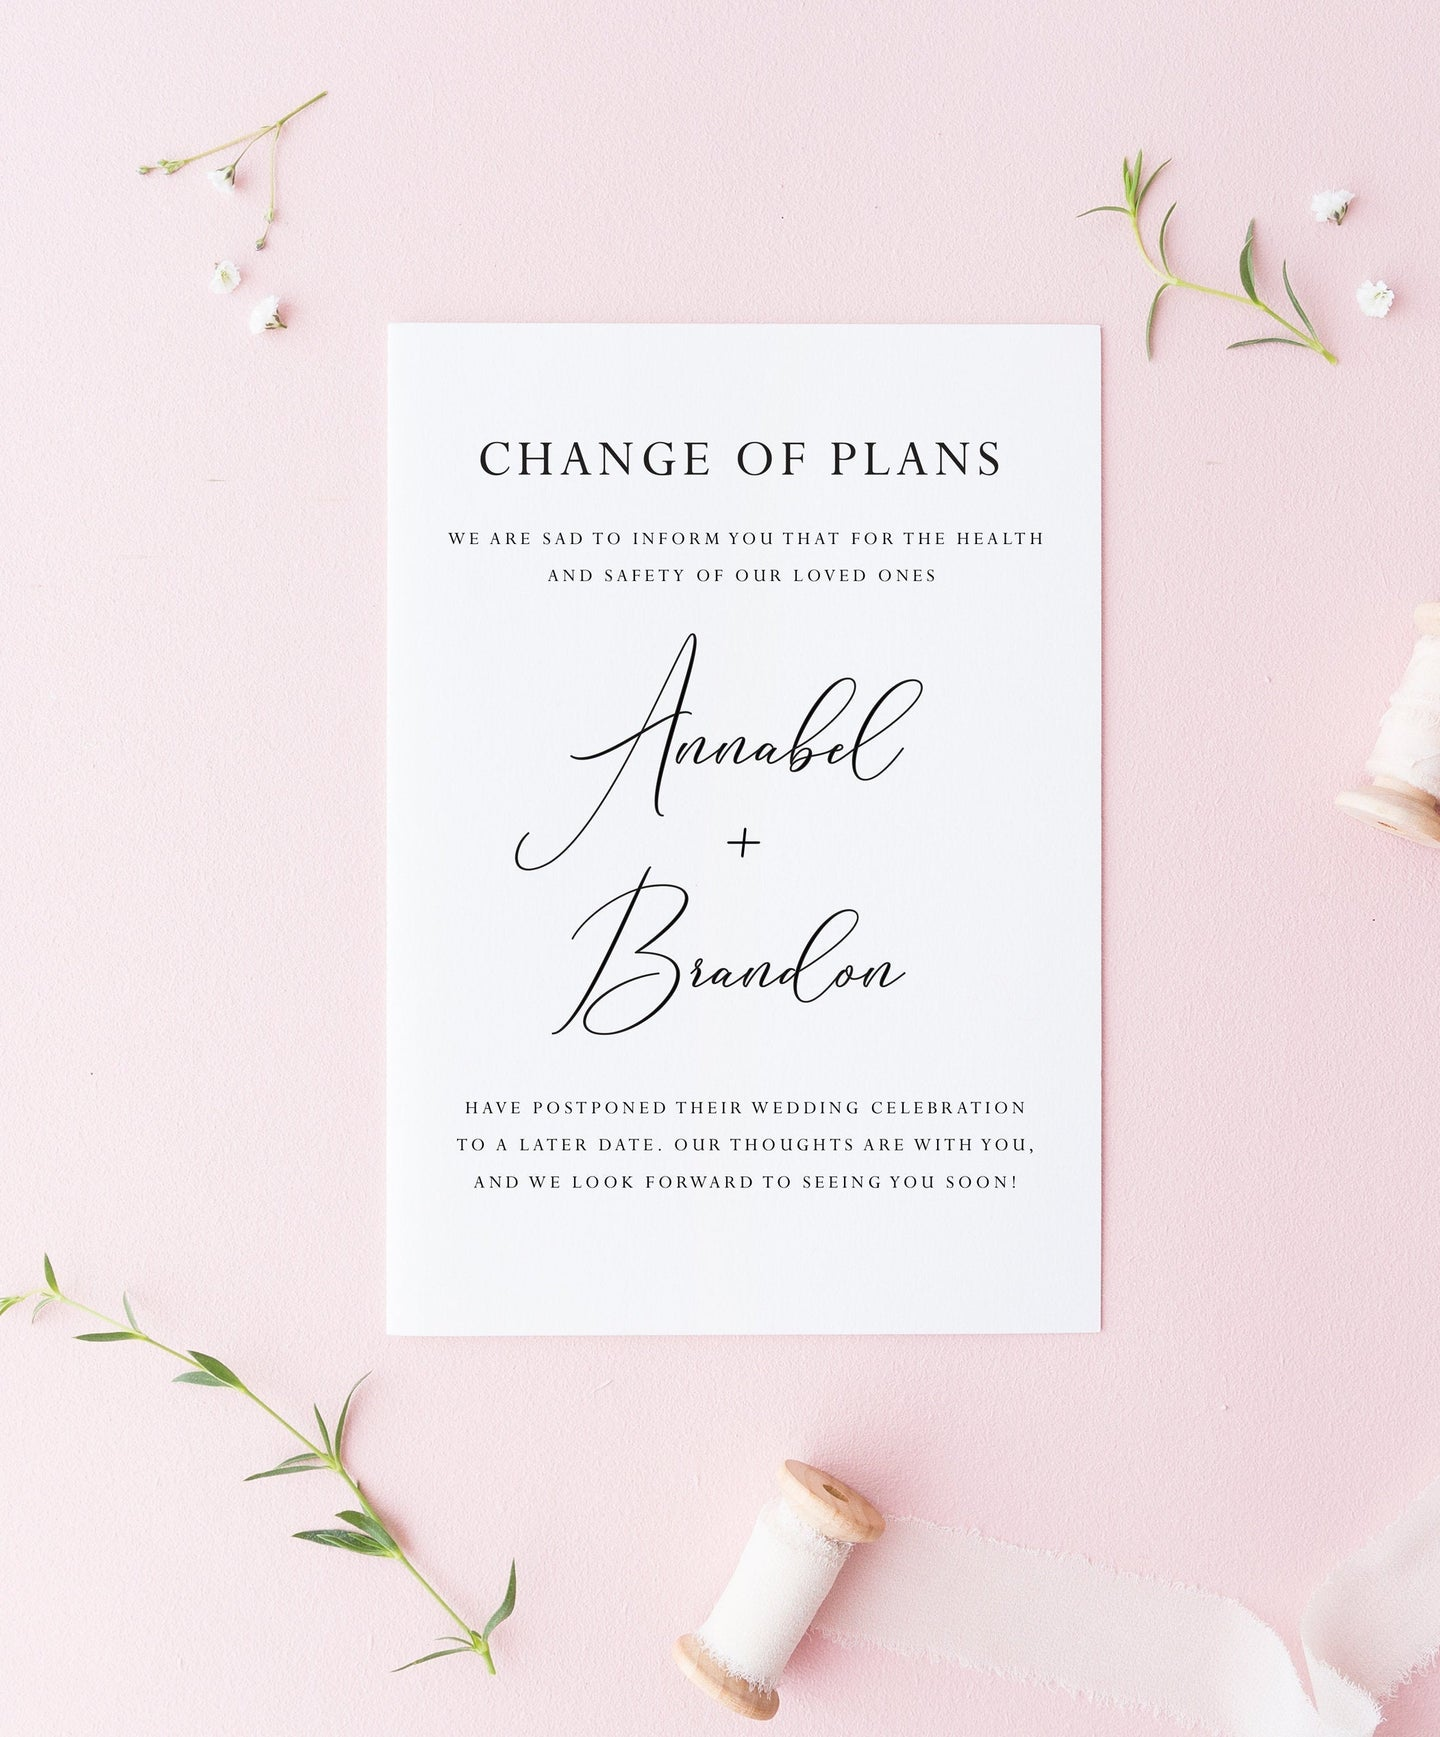 Change of Plans, New Wedding Date, Wedding Postponement, Announcement, Postponed, Reschedule, Wedding Delay, Rehearsal Dinner (set of 25)